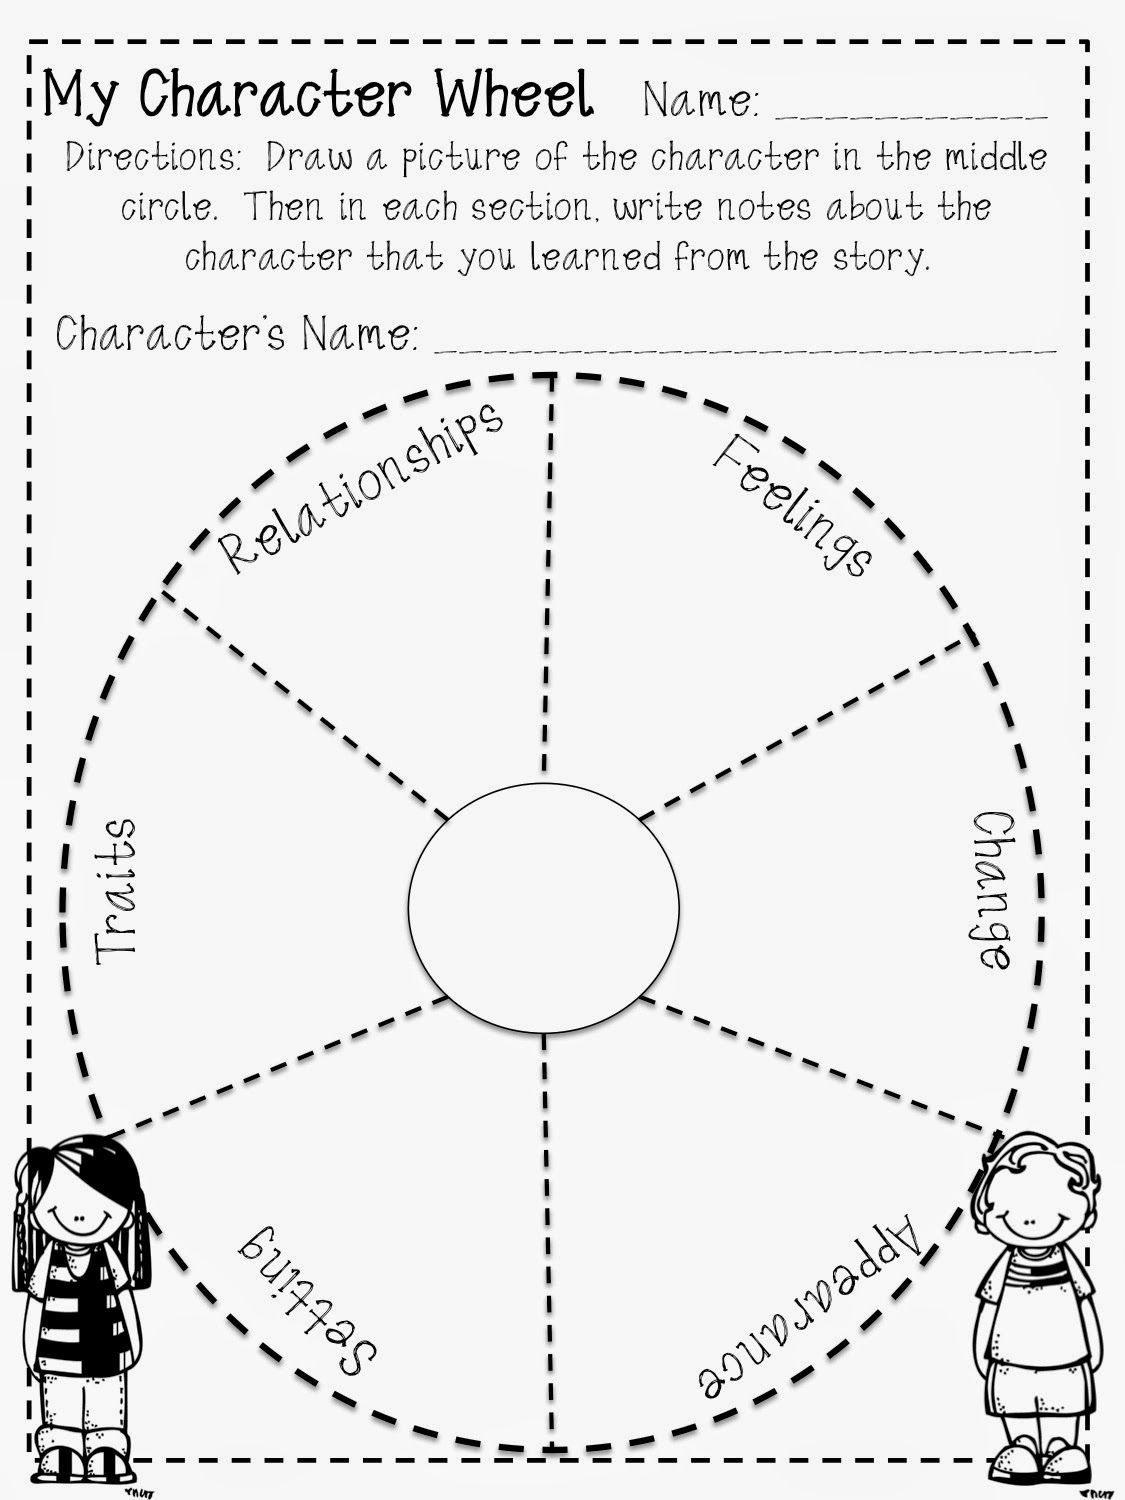 Reading Character Wheel Freebie